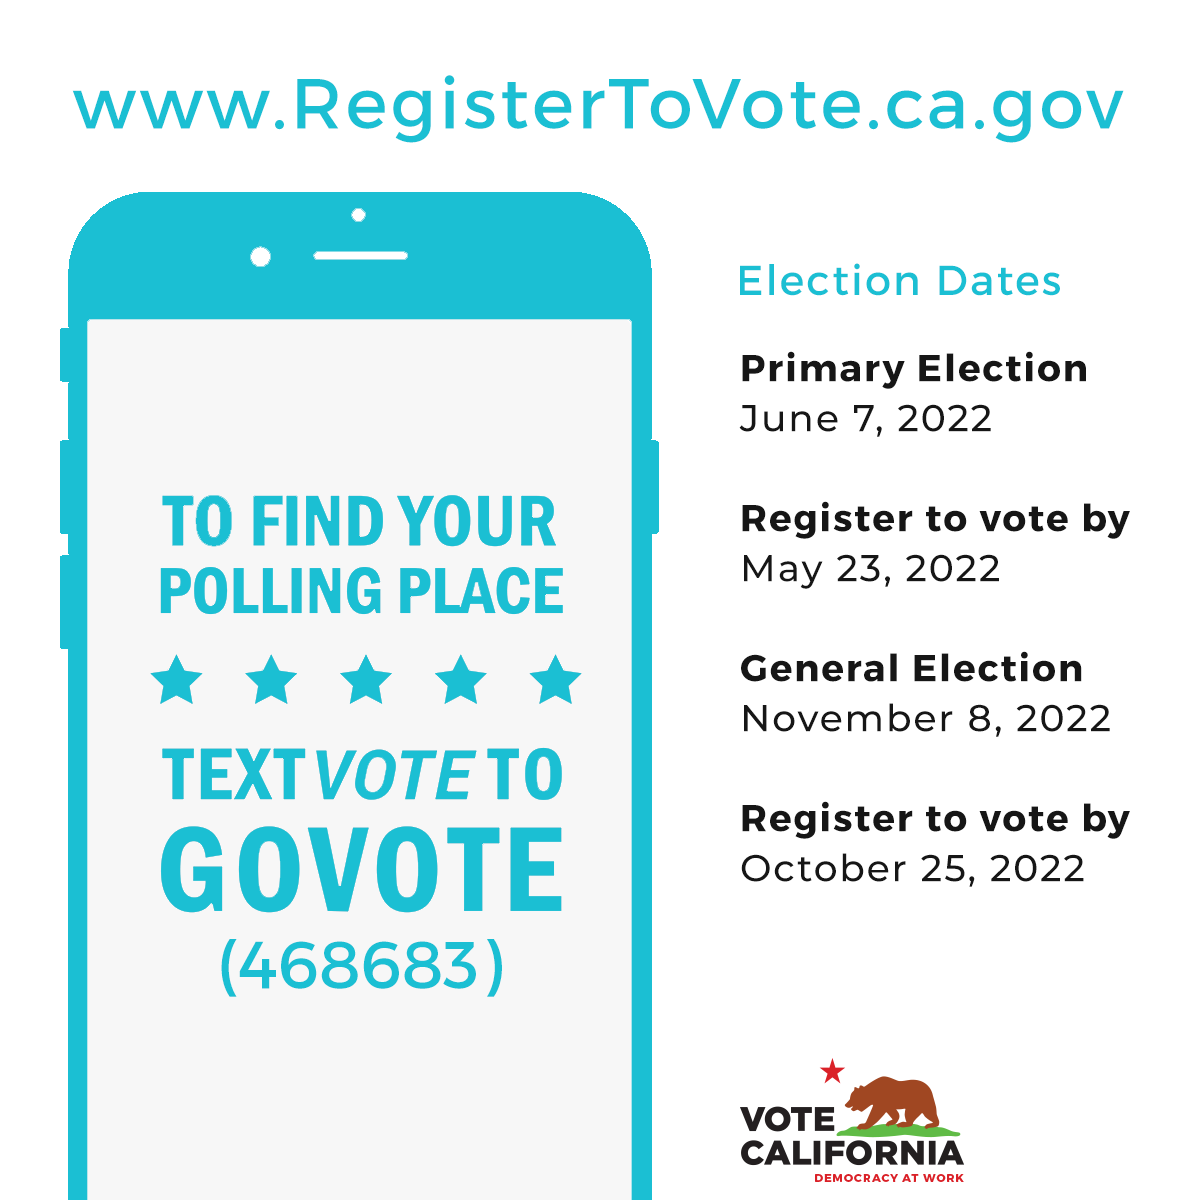 Democracy at work, Vote California, registertovote.ca.gov, text vote to govote to find your polling place